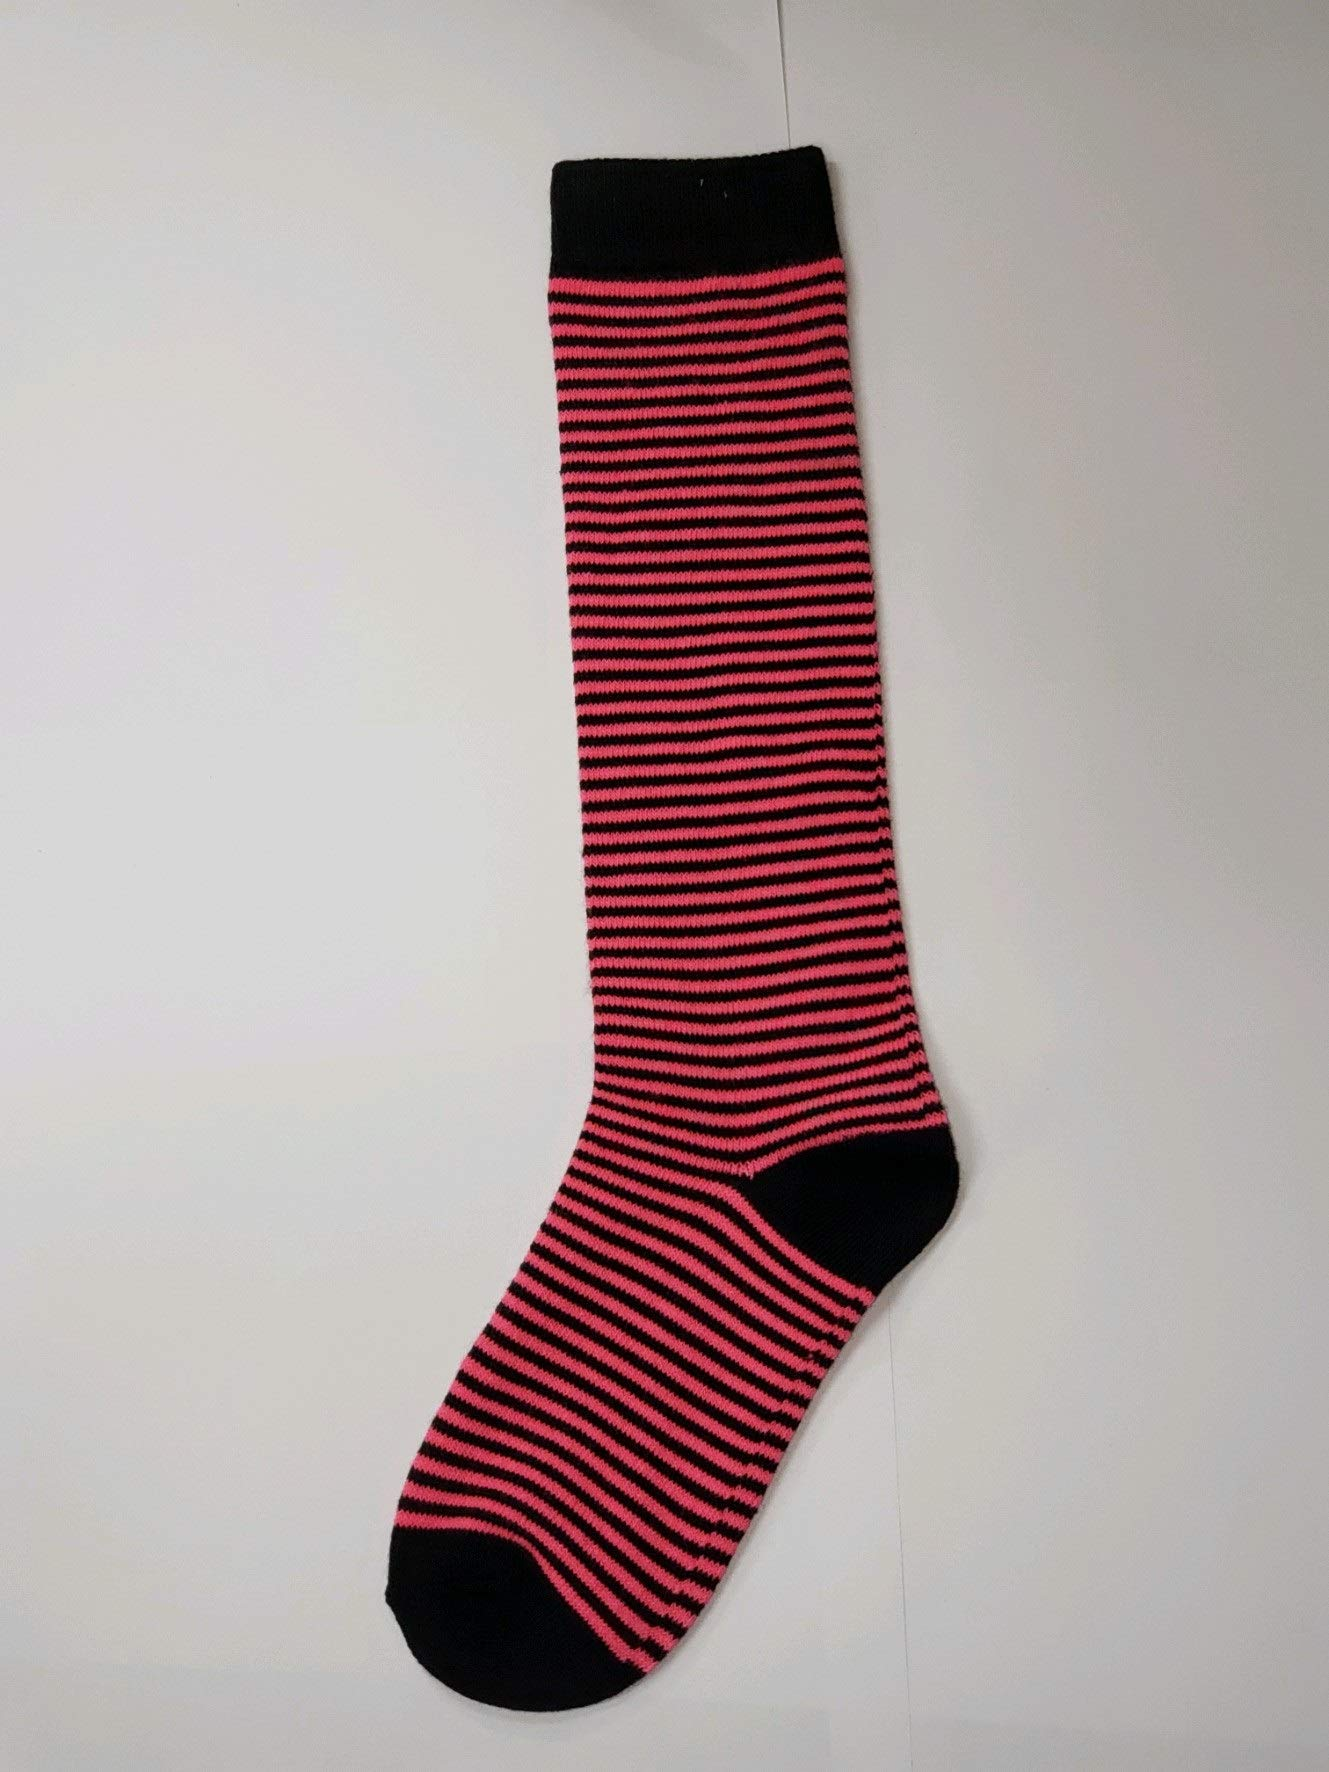 SOCKS FOR SCHOOL AND CHARITY by NC Hosiery